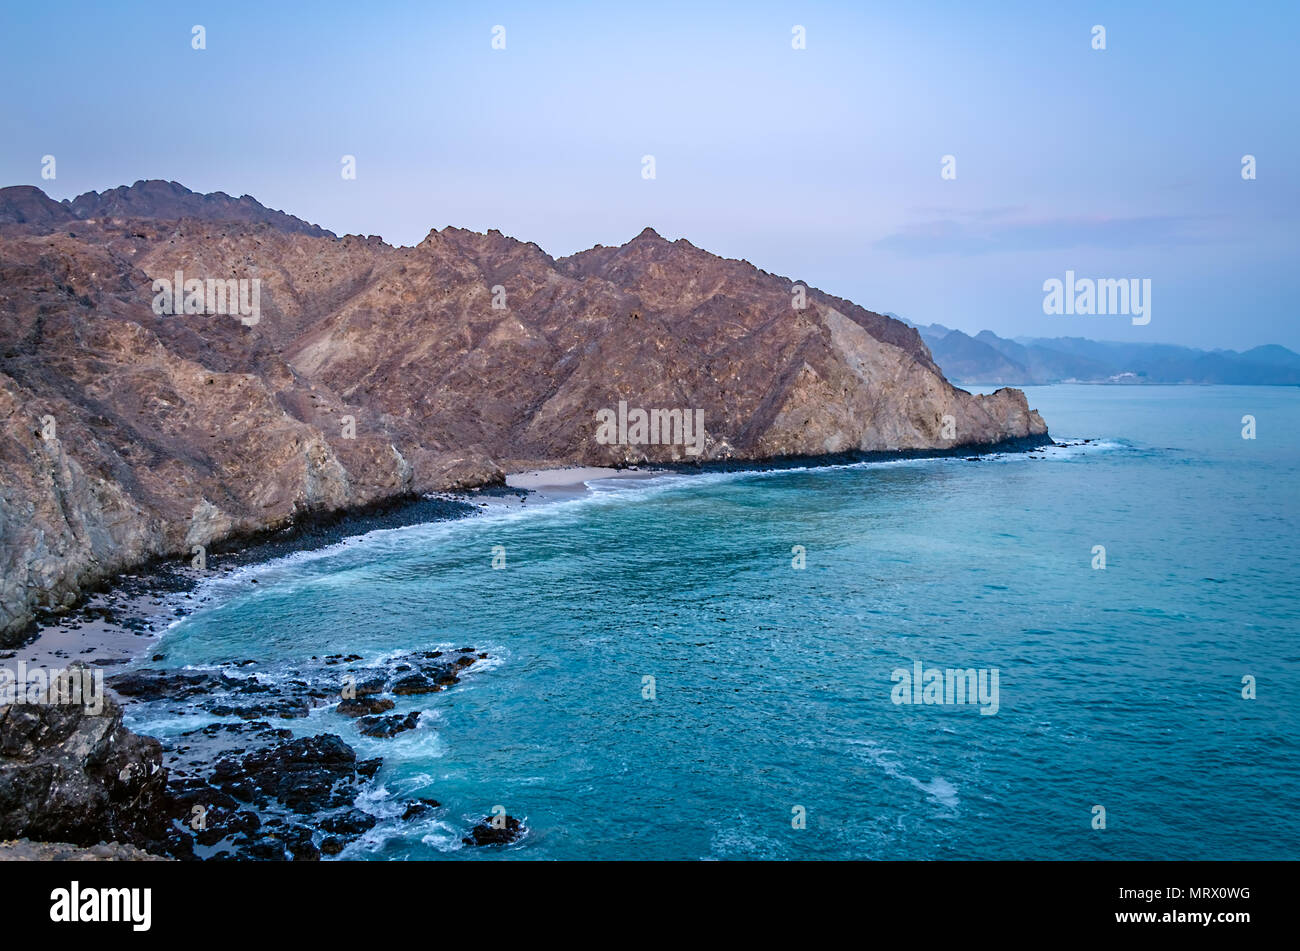 Beautiful bird's eye view of barren, pointy mountains and turquoise sea water in Oman. - Stock Image